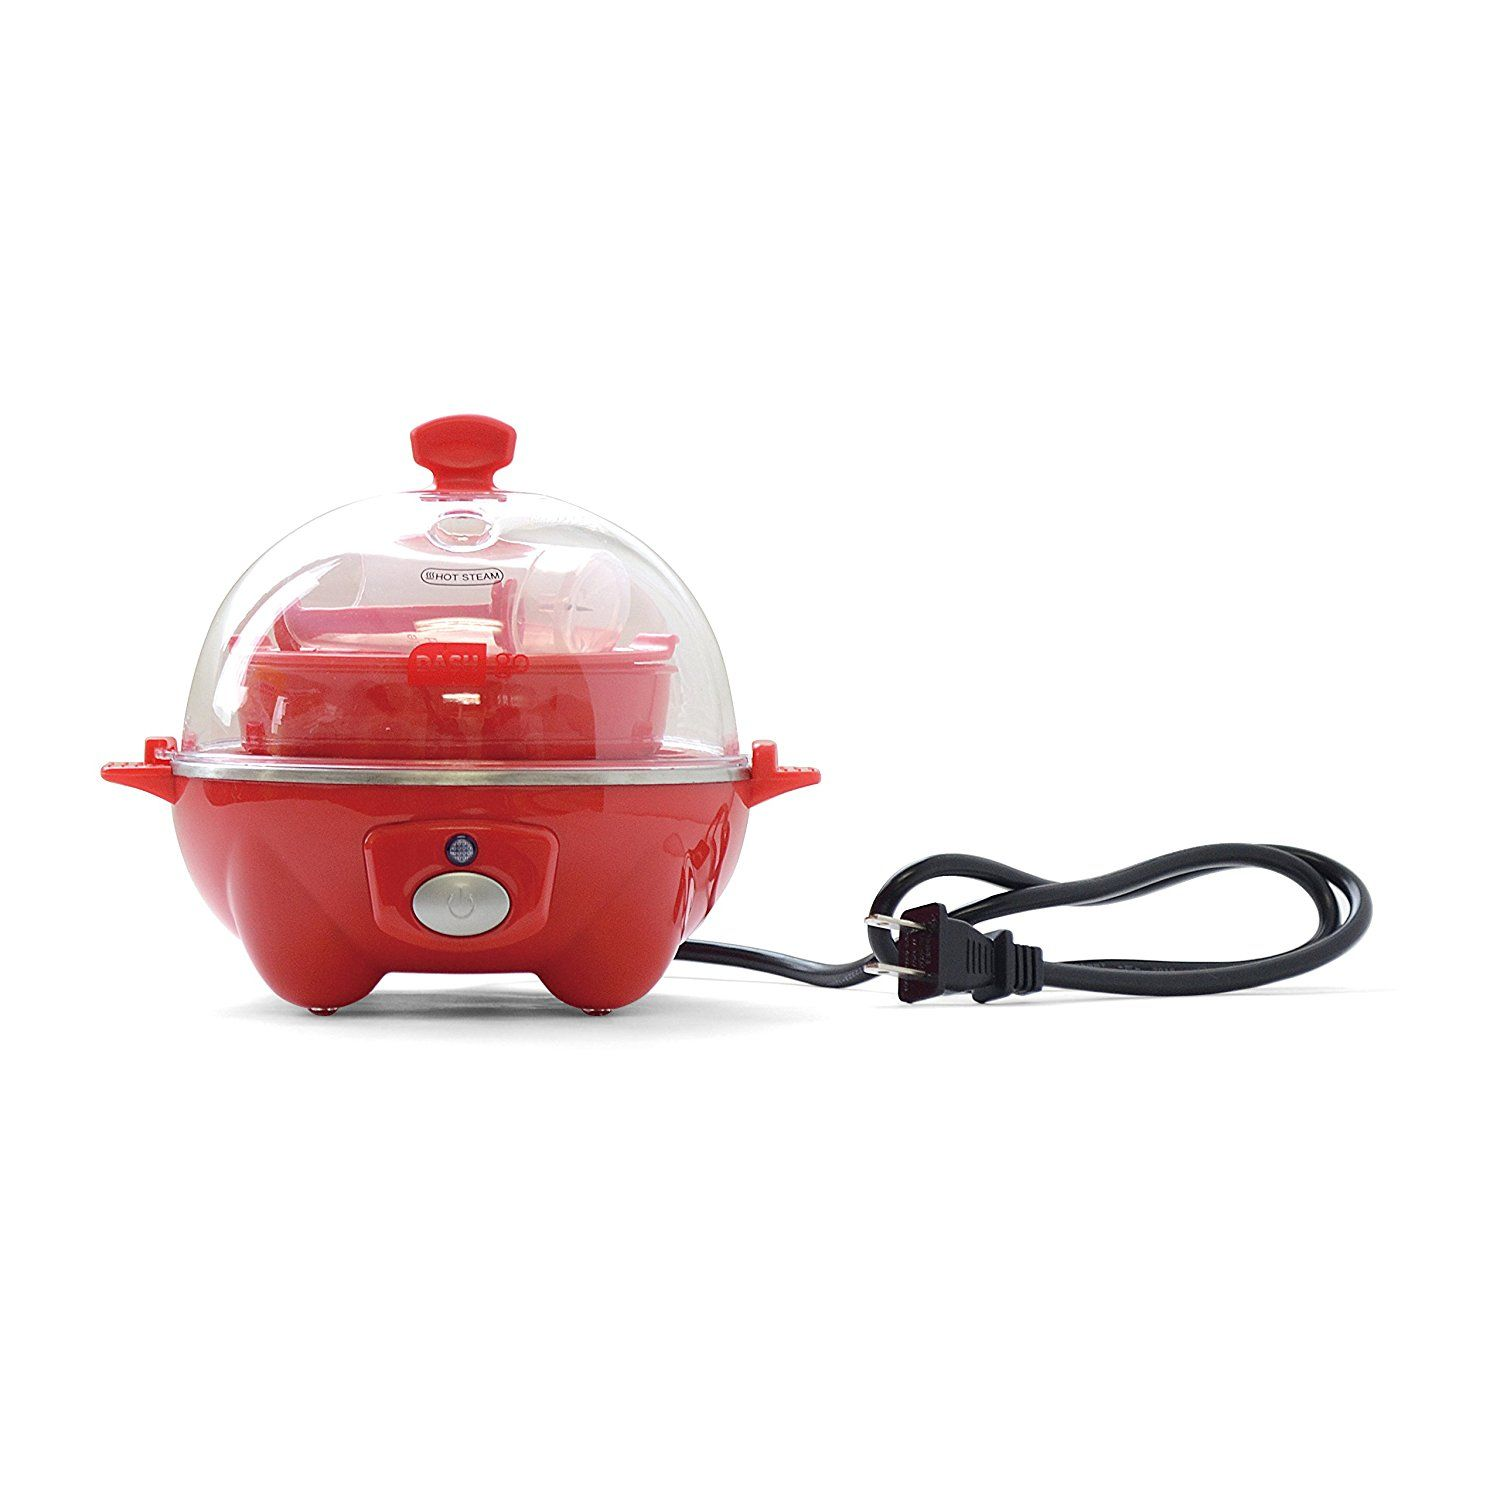 dash go rapid egg cooker you can more details by clicking